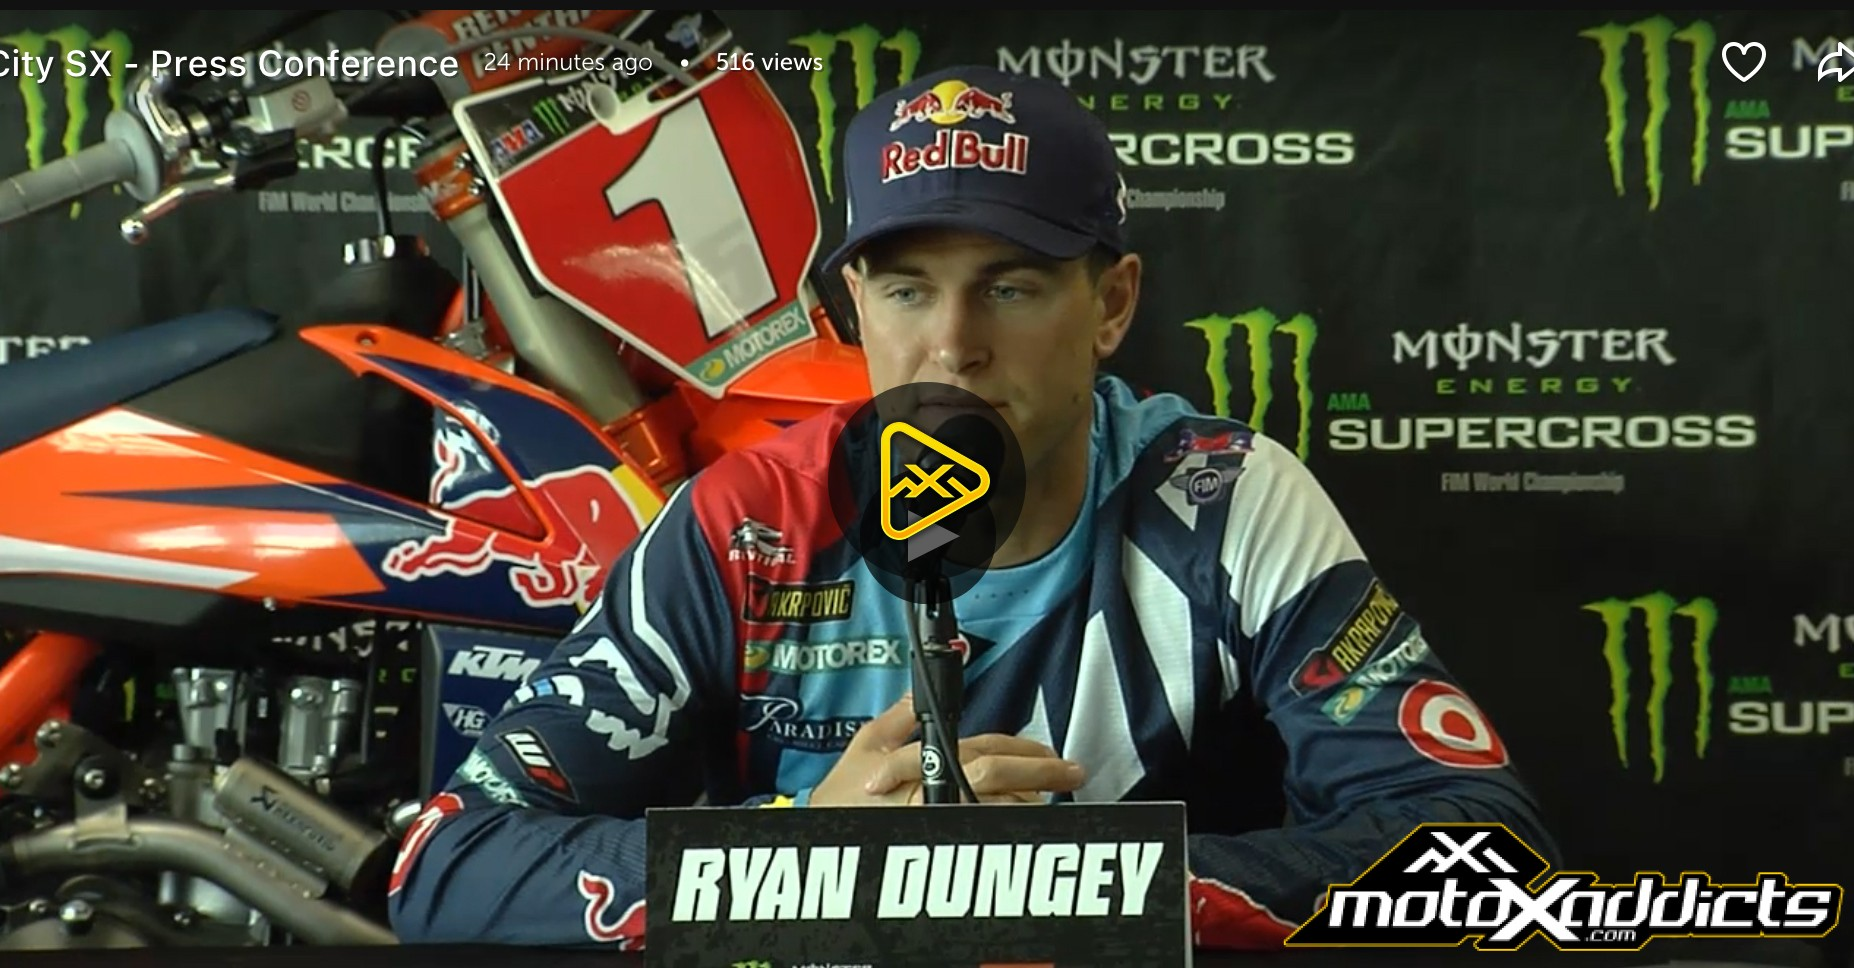 2017 Salt Lake City SX – Press Conference